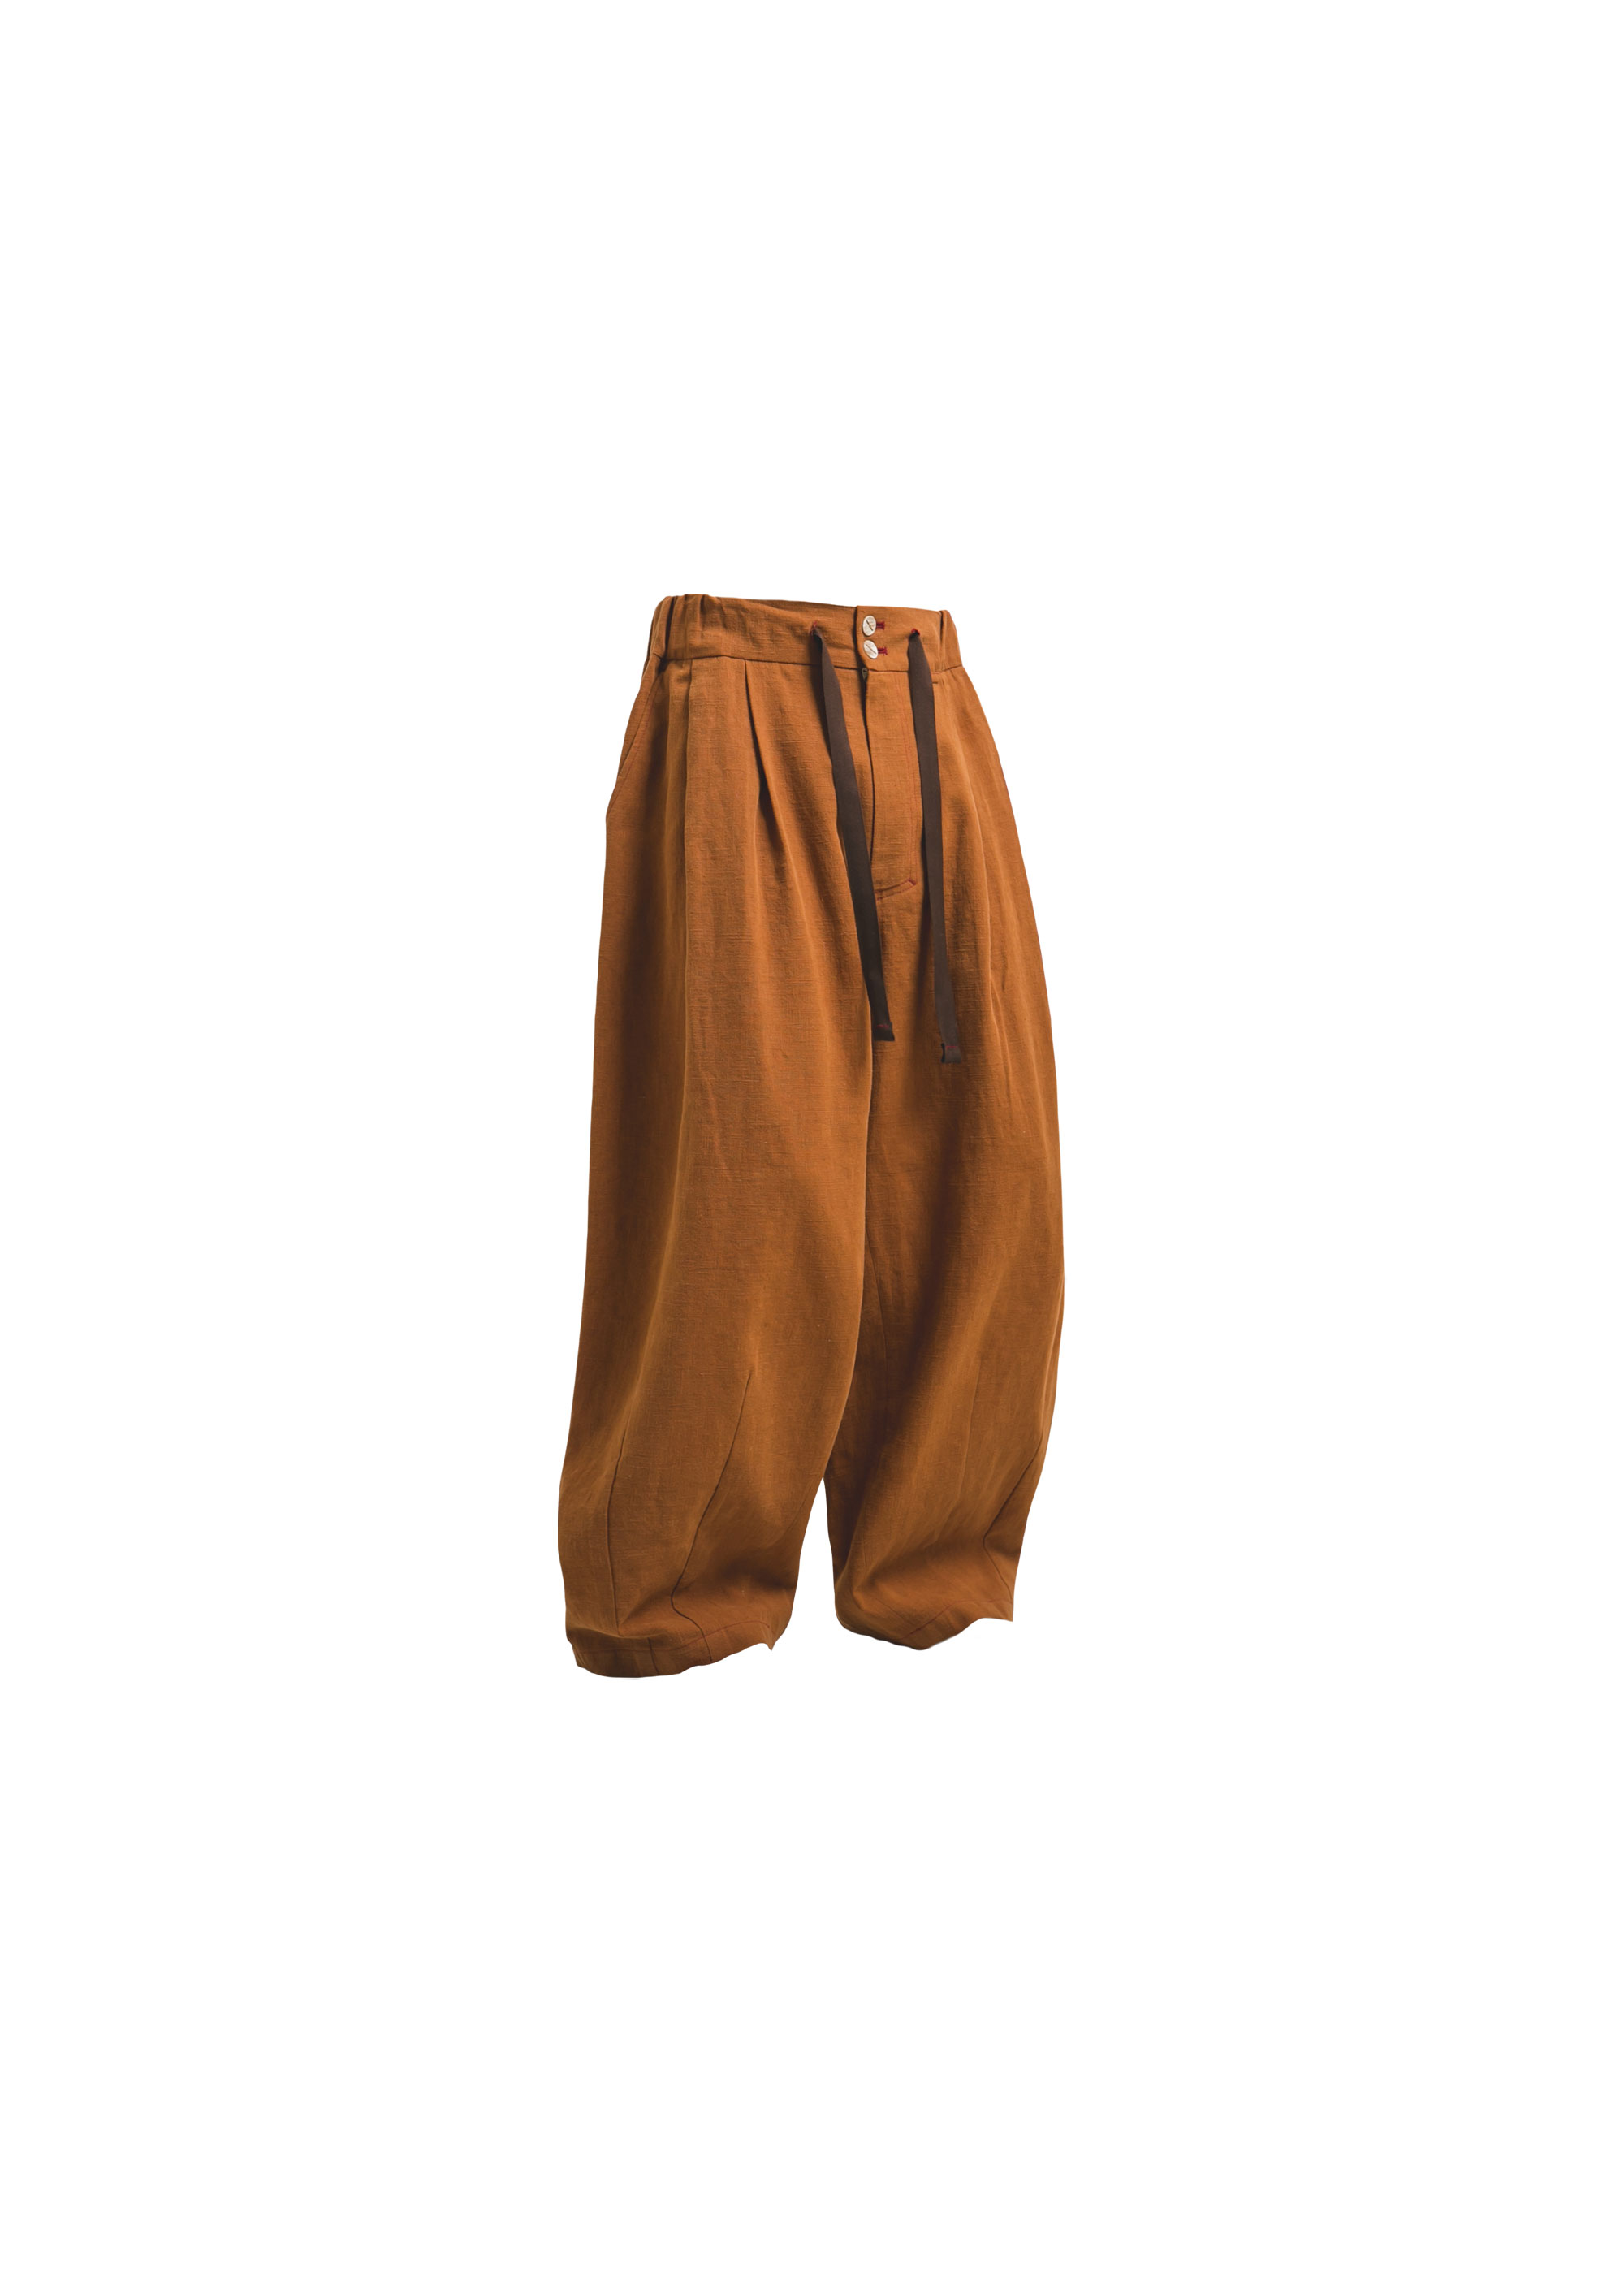 [AG] Linen Balloon pants - Brick